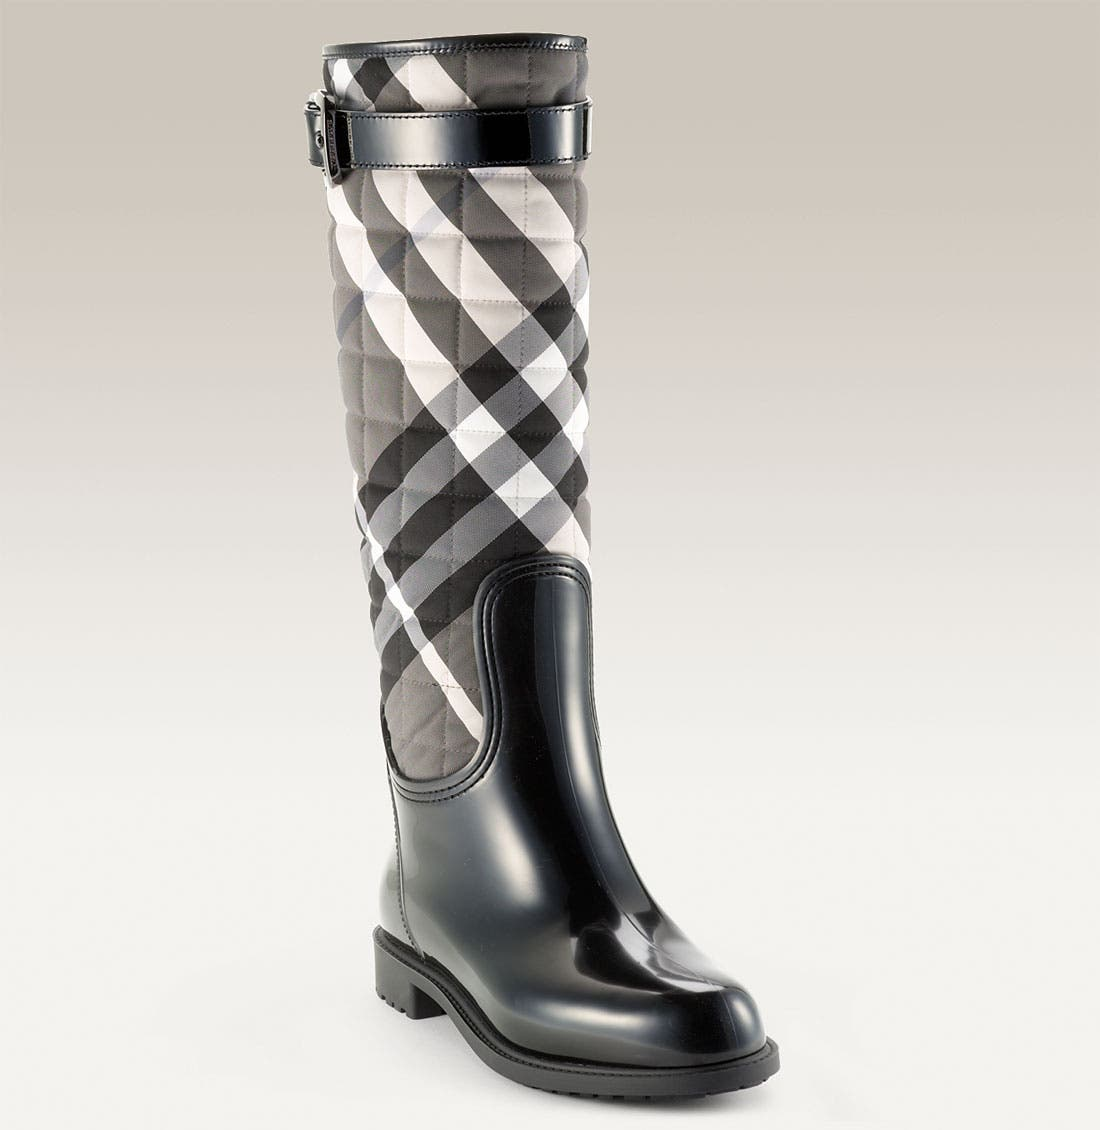 Alternate Image 1 Selected - Burberry Quilted Check Print Rain Boot